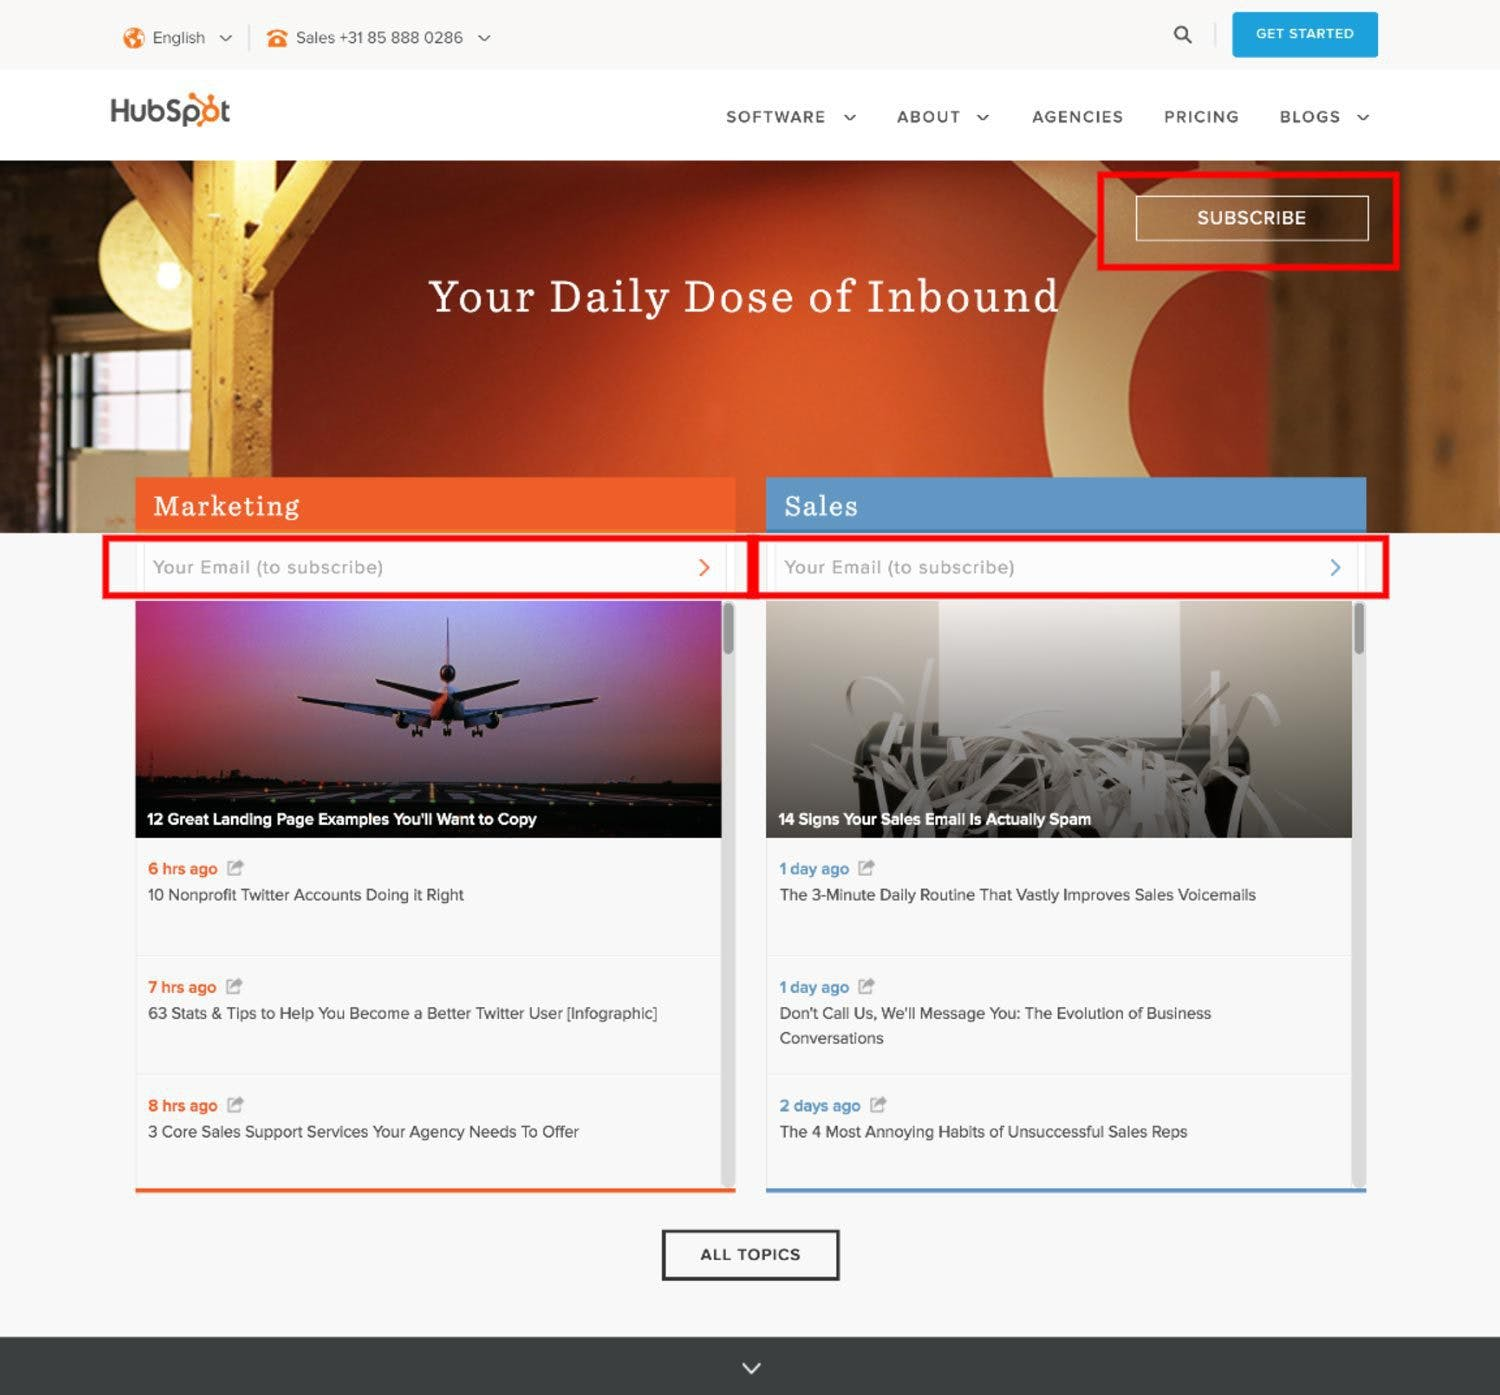 HubSpsot makes it easy for users to subscribe